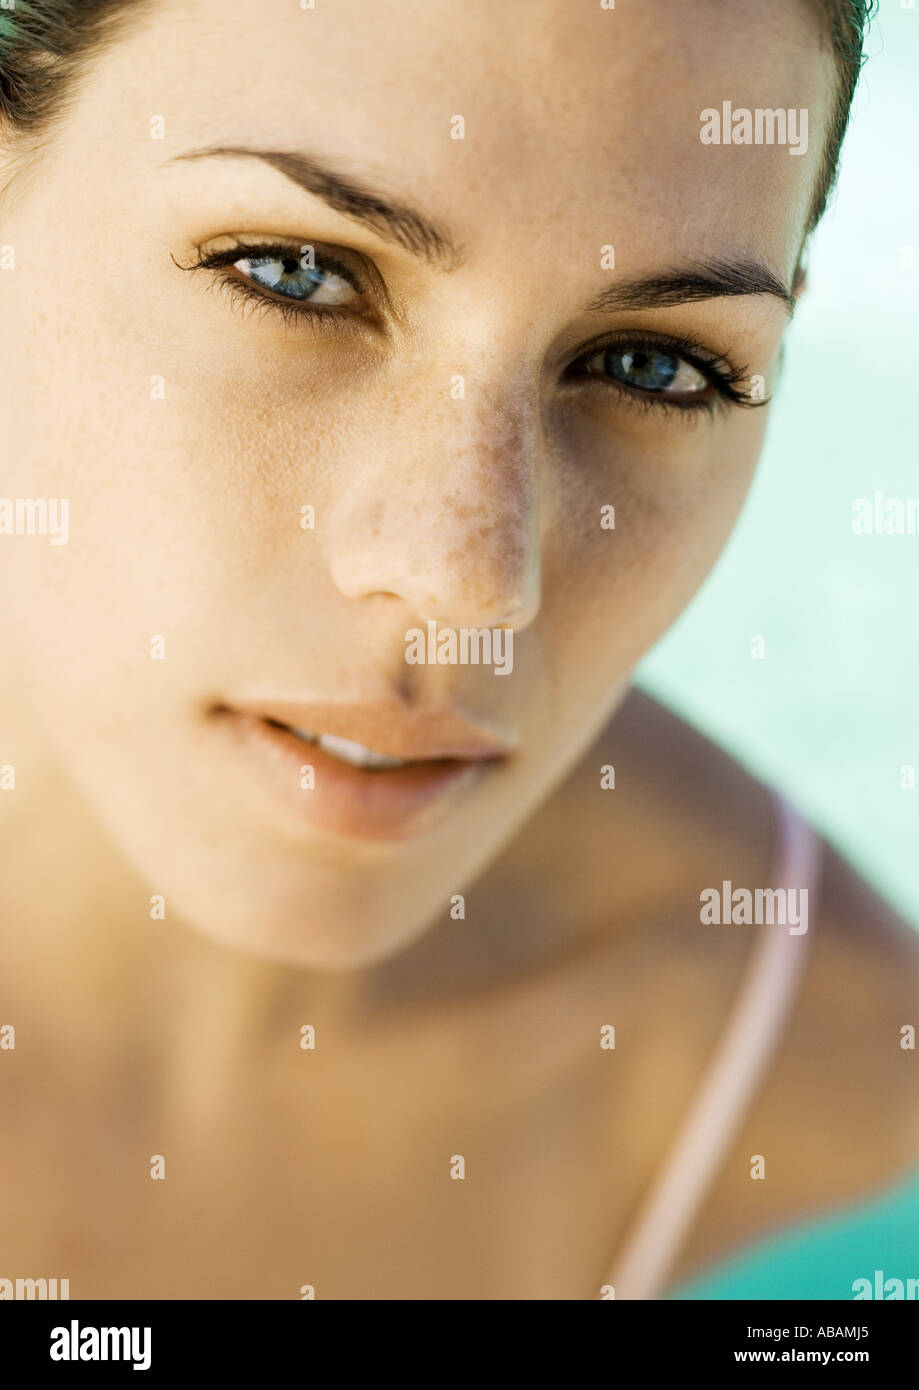 Woman's face - Stock Image